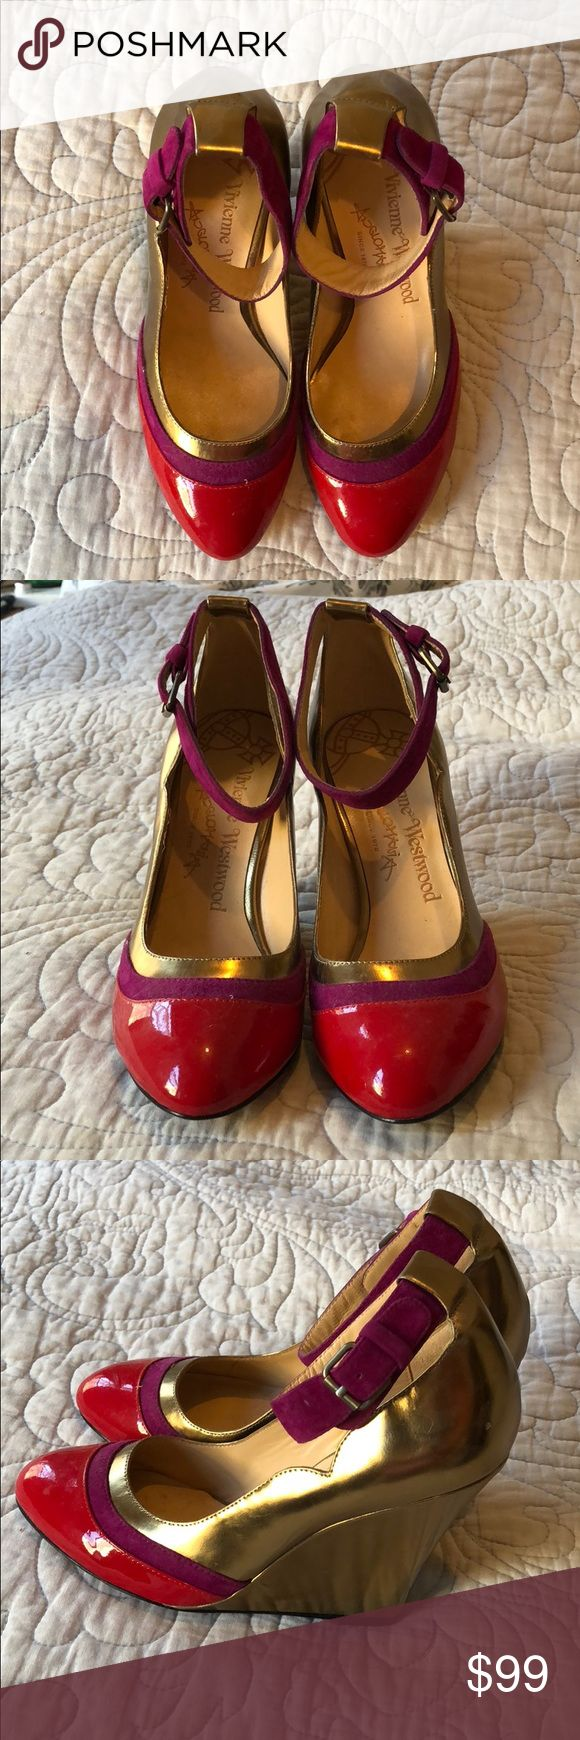 Vuvienne Westwood Purple Multi wedges. Size 36 Brand new still has sales sticker on sole. 100% leather  Style no:95698-6 Upper: leather and suede Color: purple red and bronze  Never been worn, comes with shoe bag Vivienne Westwood Shoes Wedges